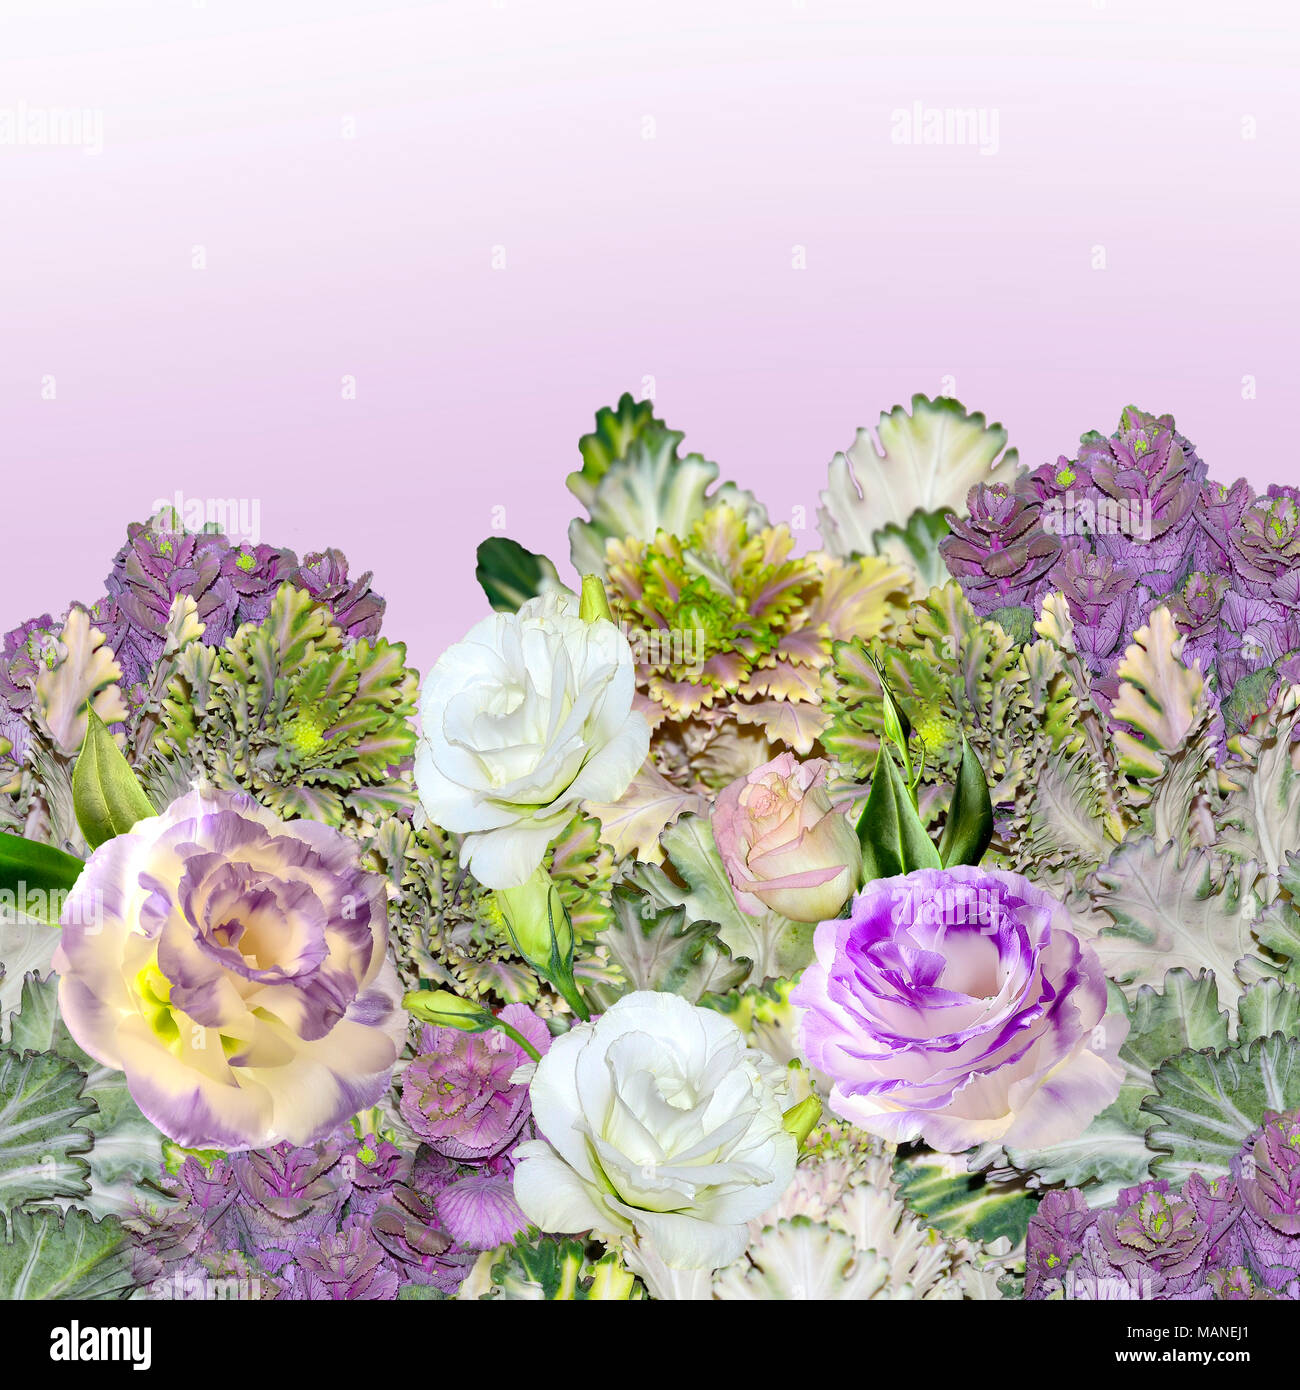 Floral border with bouquet of purple with white Eustoma (Lisianthus) flowers and ornamental cabbage - Brassica, or flowering kale as festive or floris - Stock Image